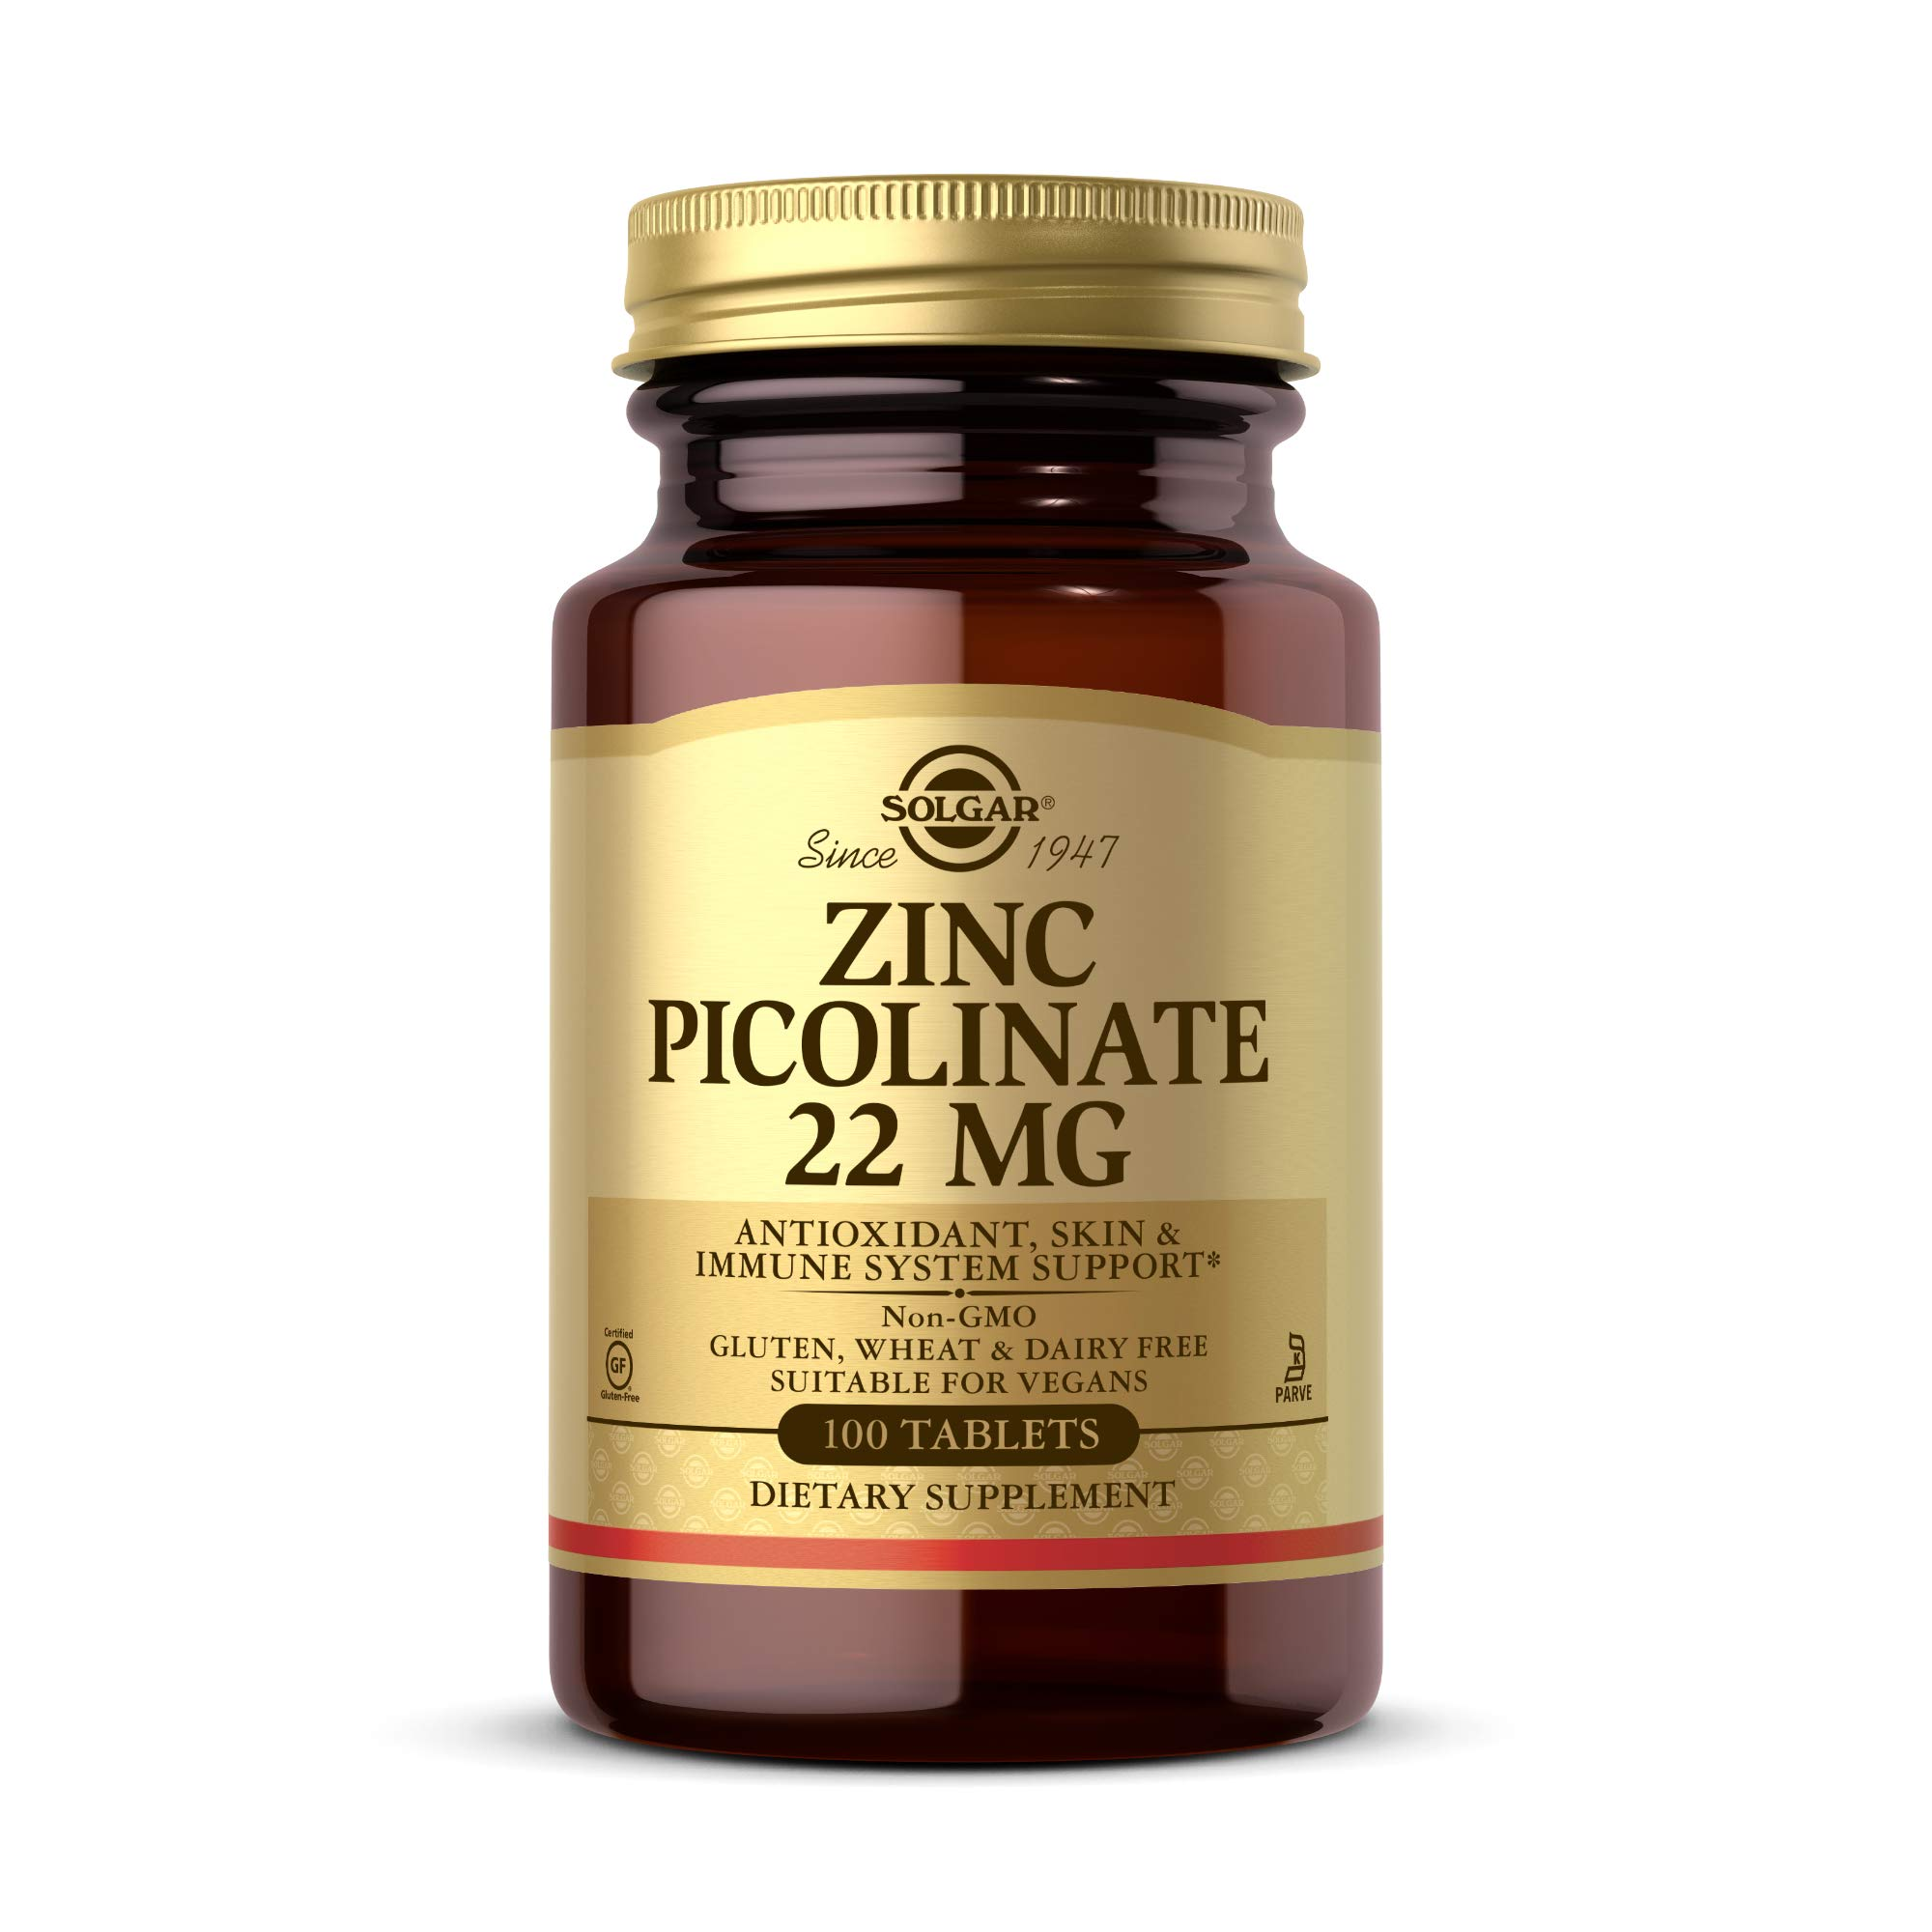 Solgar Zinc Picolinate 22 mg, 100 Tablets - Promotes Healthy Skin - Supports Immune System, Normal Taste & Vision - Antioxidant - Non GMO, Vegan, Gluten Free, Dairy Free, Kosher - 100 Servings